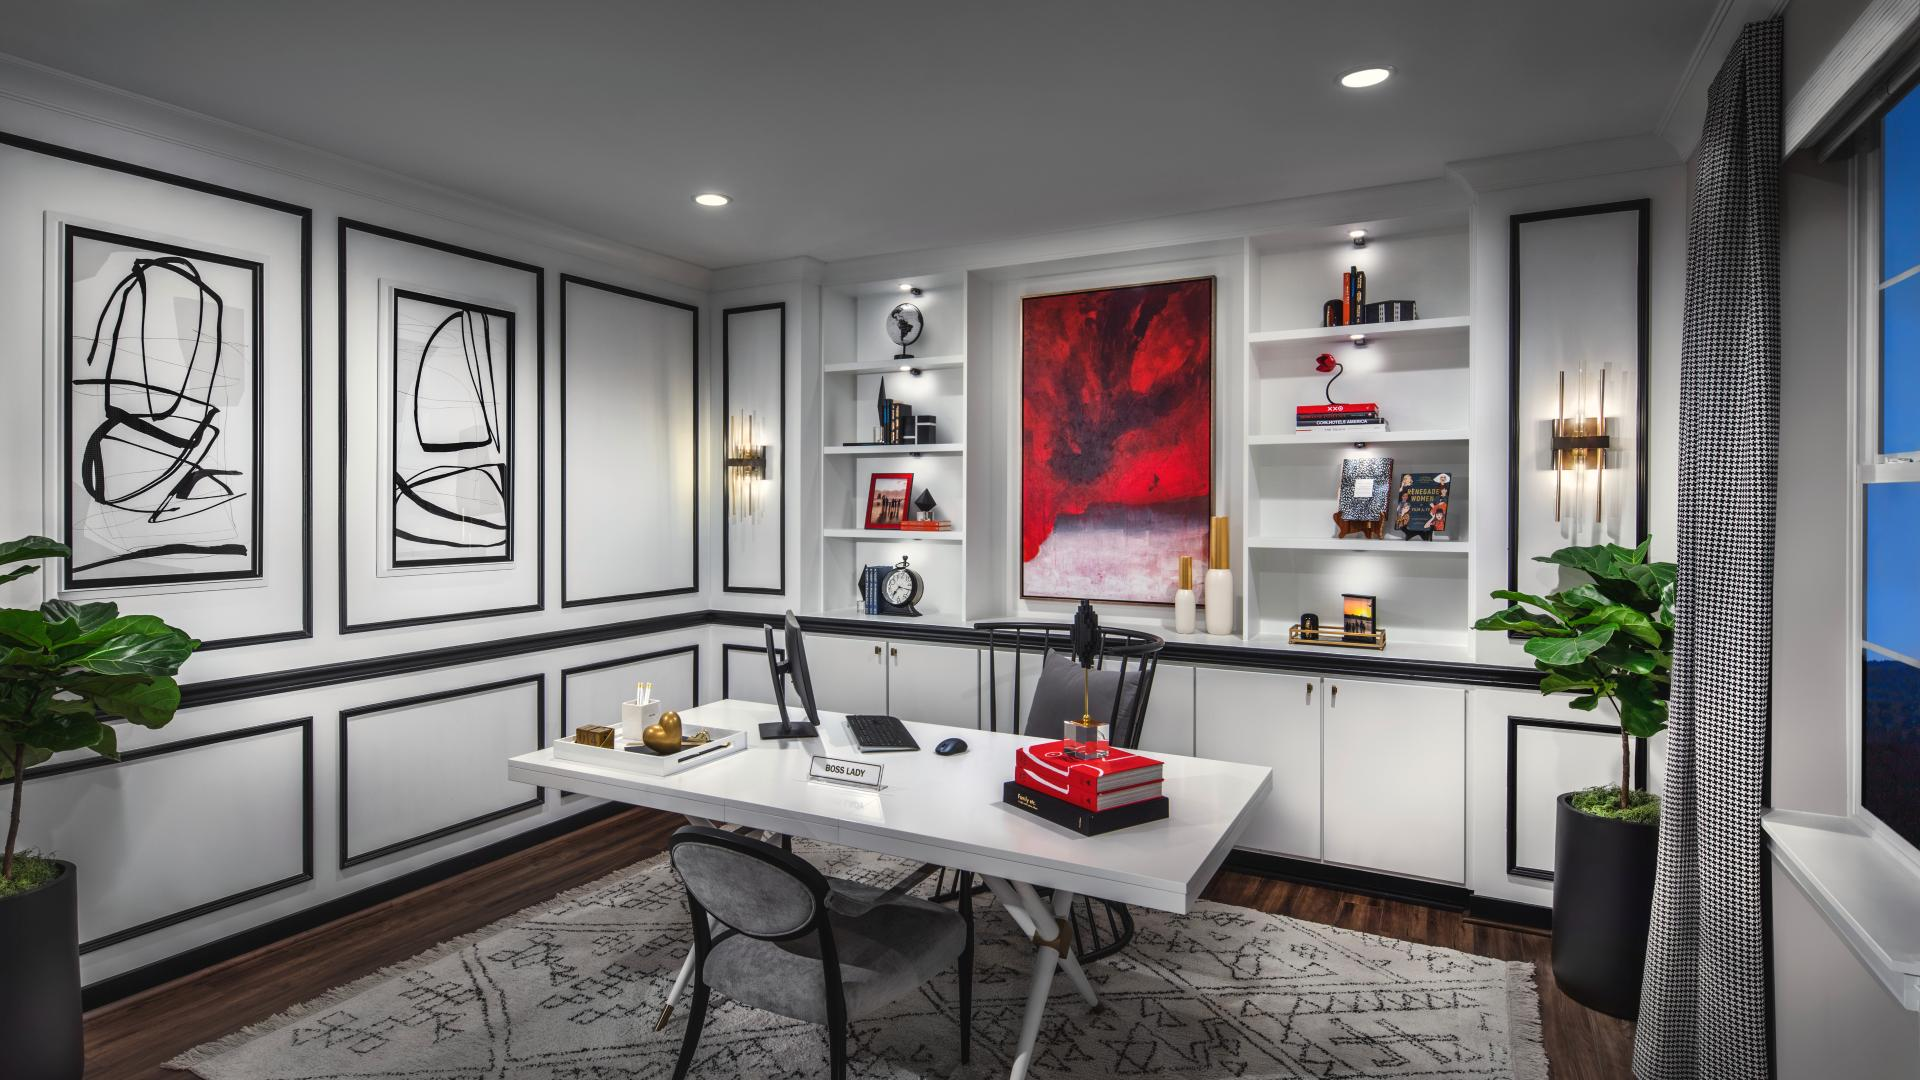 Floor plans offer plenty of space to have a dedicated office when working from home